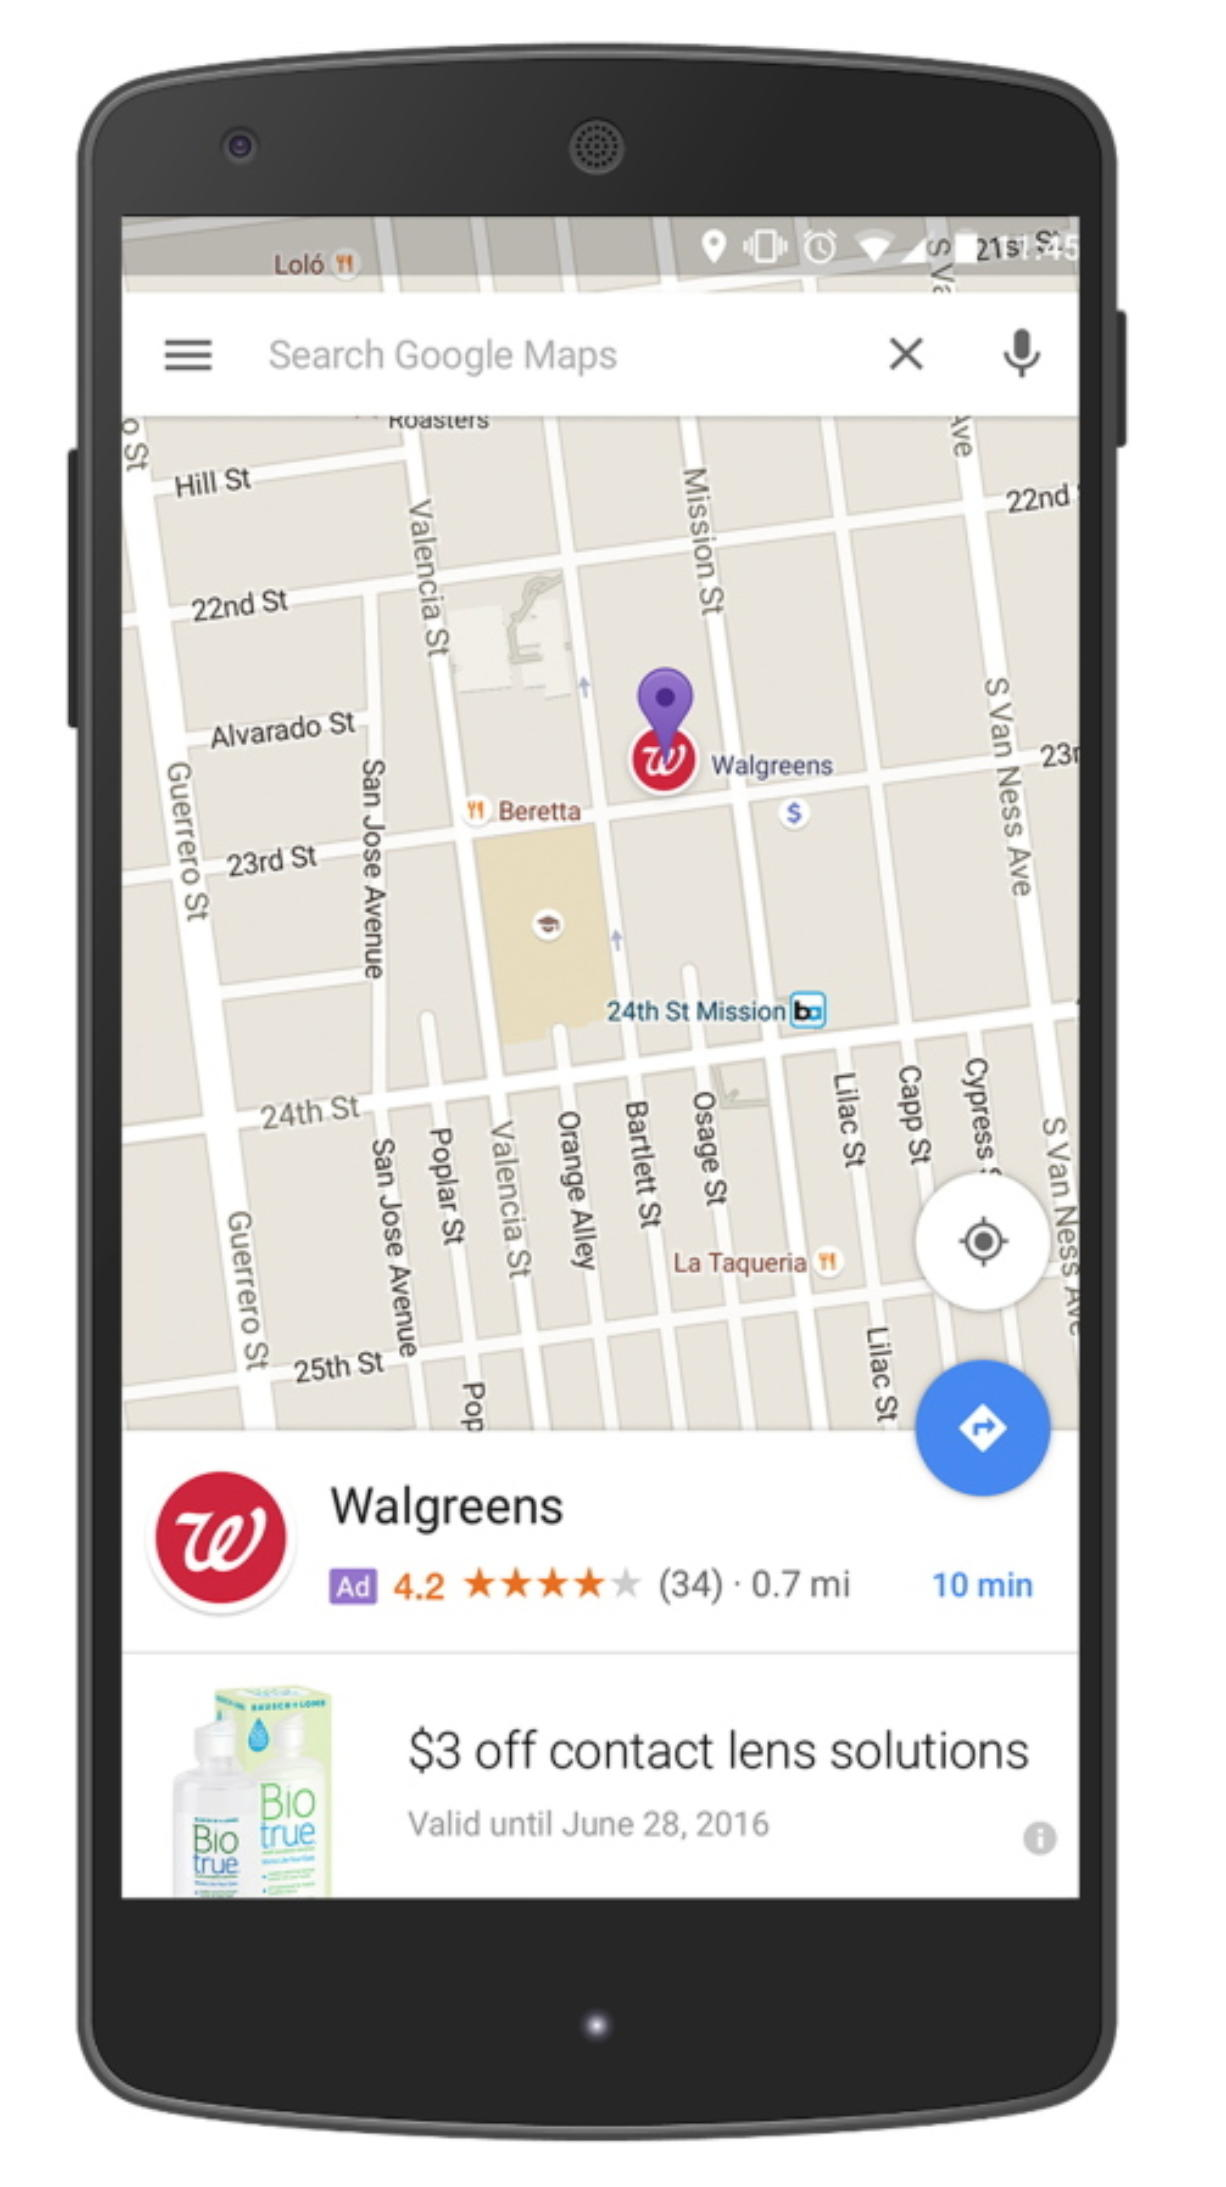 Google Maps directions may soon lead you to … more ads ... on google maps ch, google maps nm, google maps ut, google maps de, google maps il, google maps iowa, google maps karnataka, google maps nv, google maps ad, google maps tx, google maps vt, google maps water, google maps ms, google maps nc, google maps au, google maps ga, google maps oh, google maps wi, google maps nd, google maps ag,